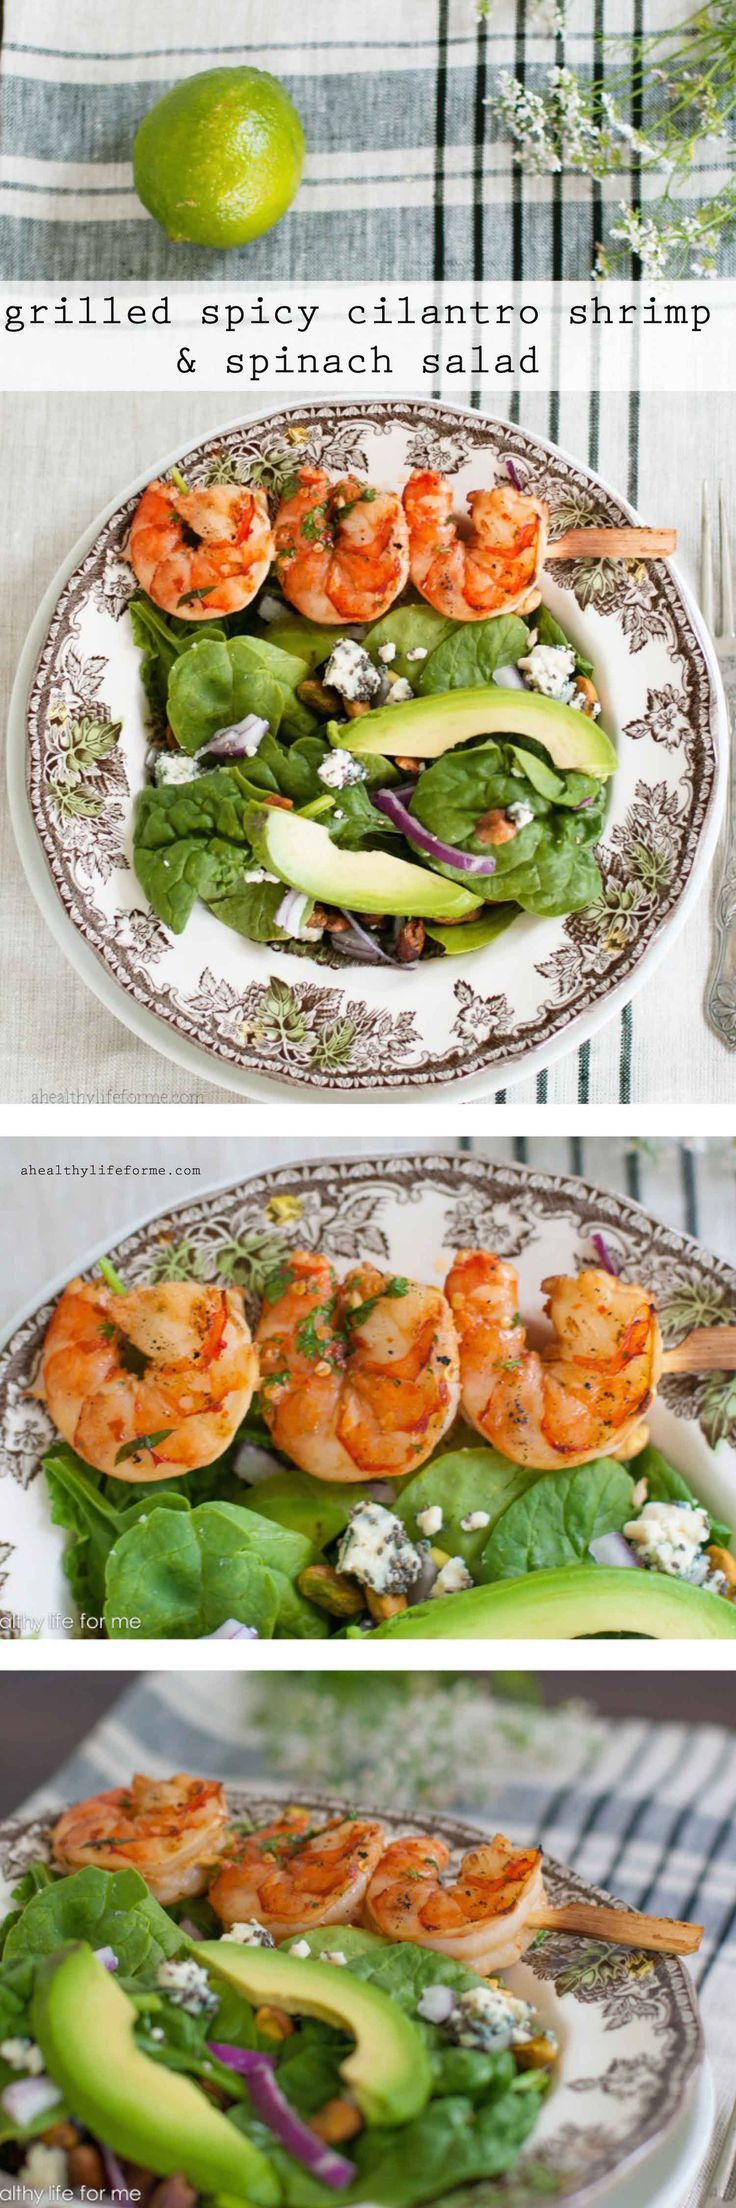 Grilled Spicy Cilantro Shrimp and Spinach Salad - A Healthy Life For Me